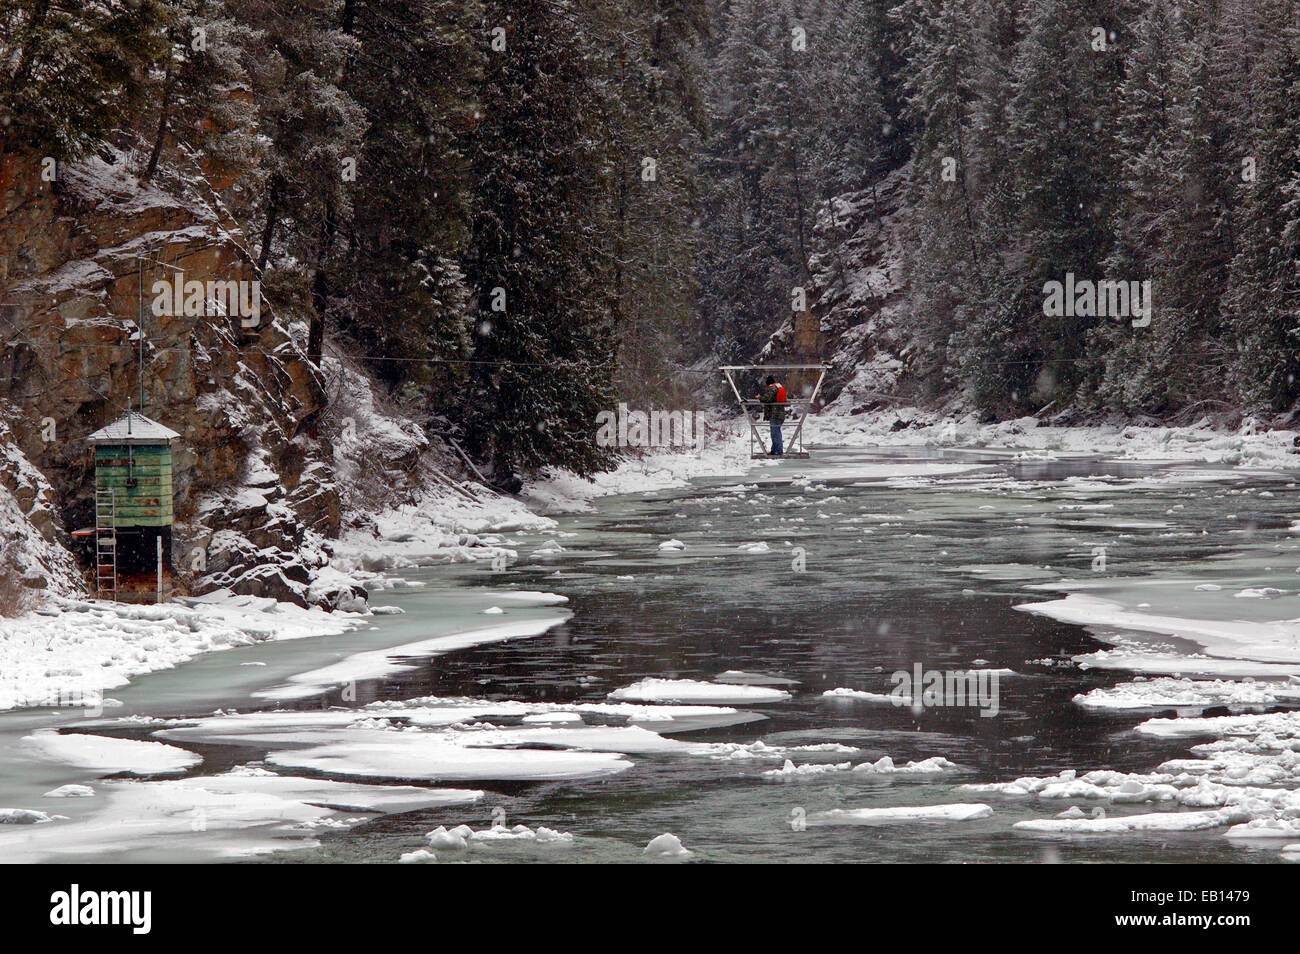 Checking a USGS stream gage on the Yaak River in winter. Kootenai River Valley, northwest Montana. - Stock Image